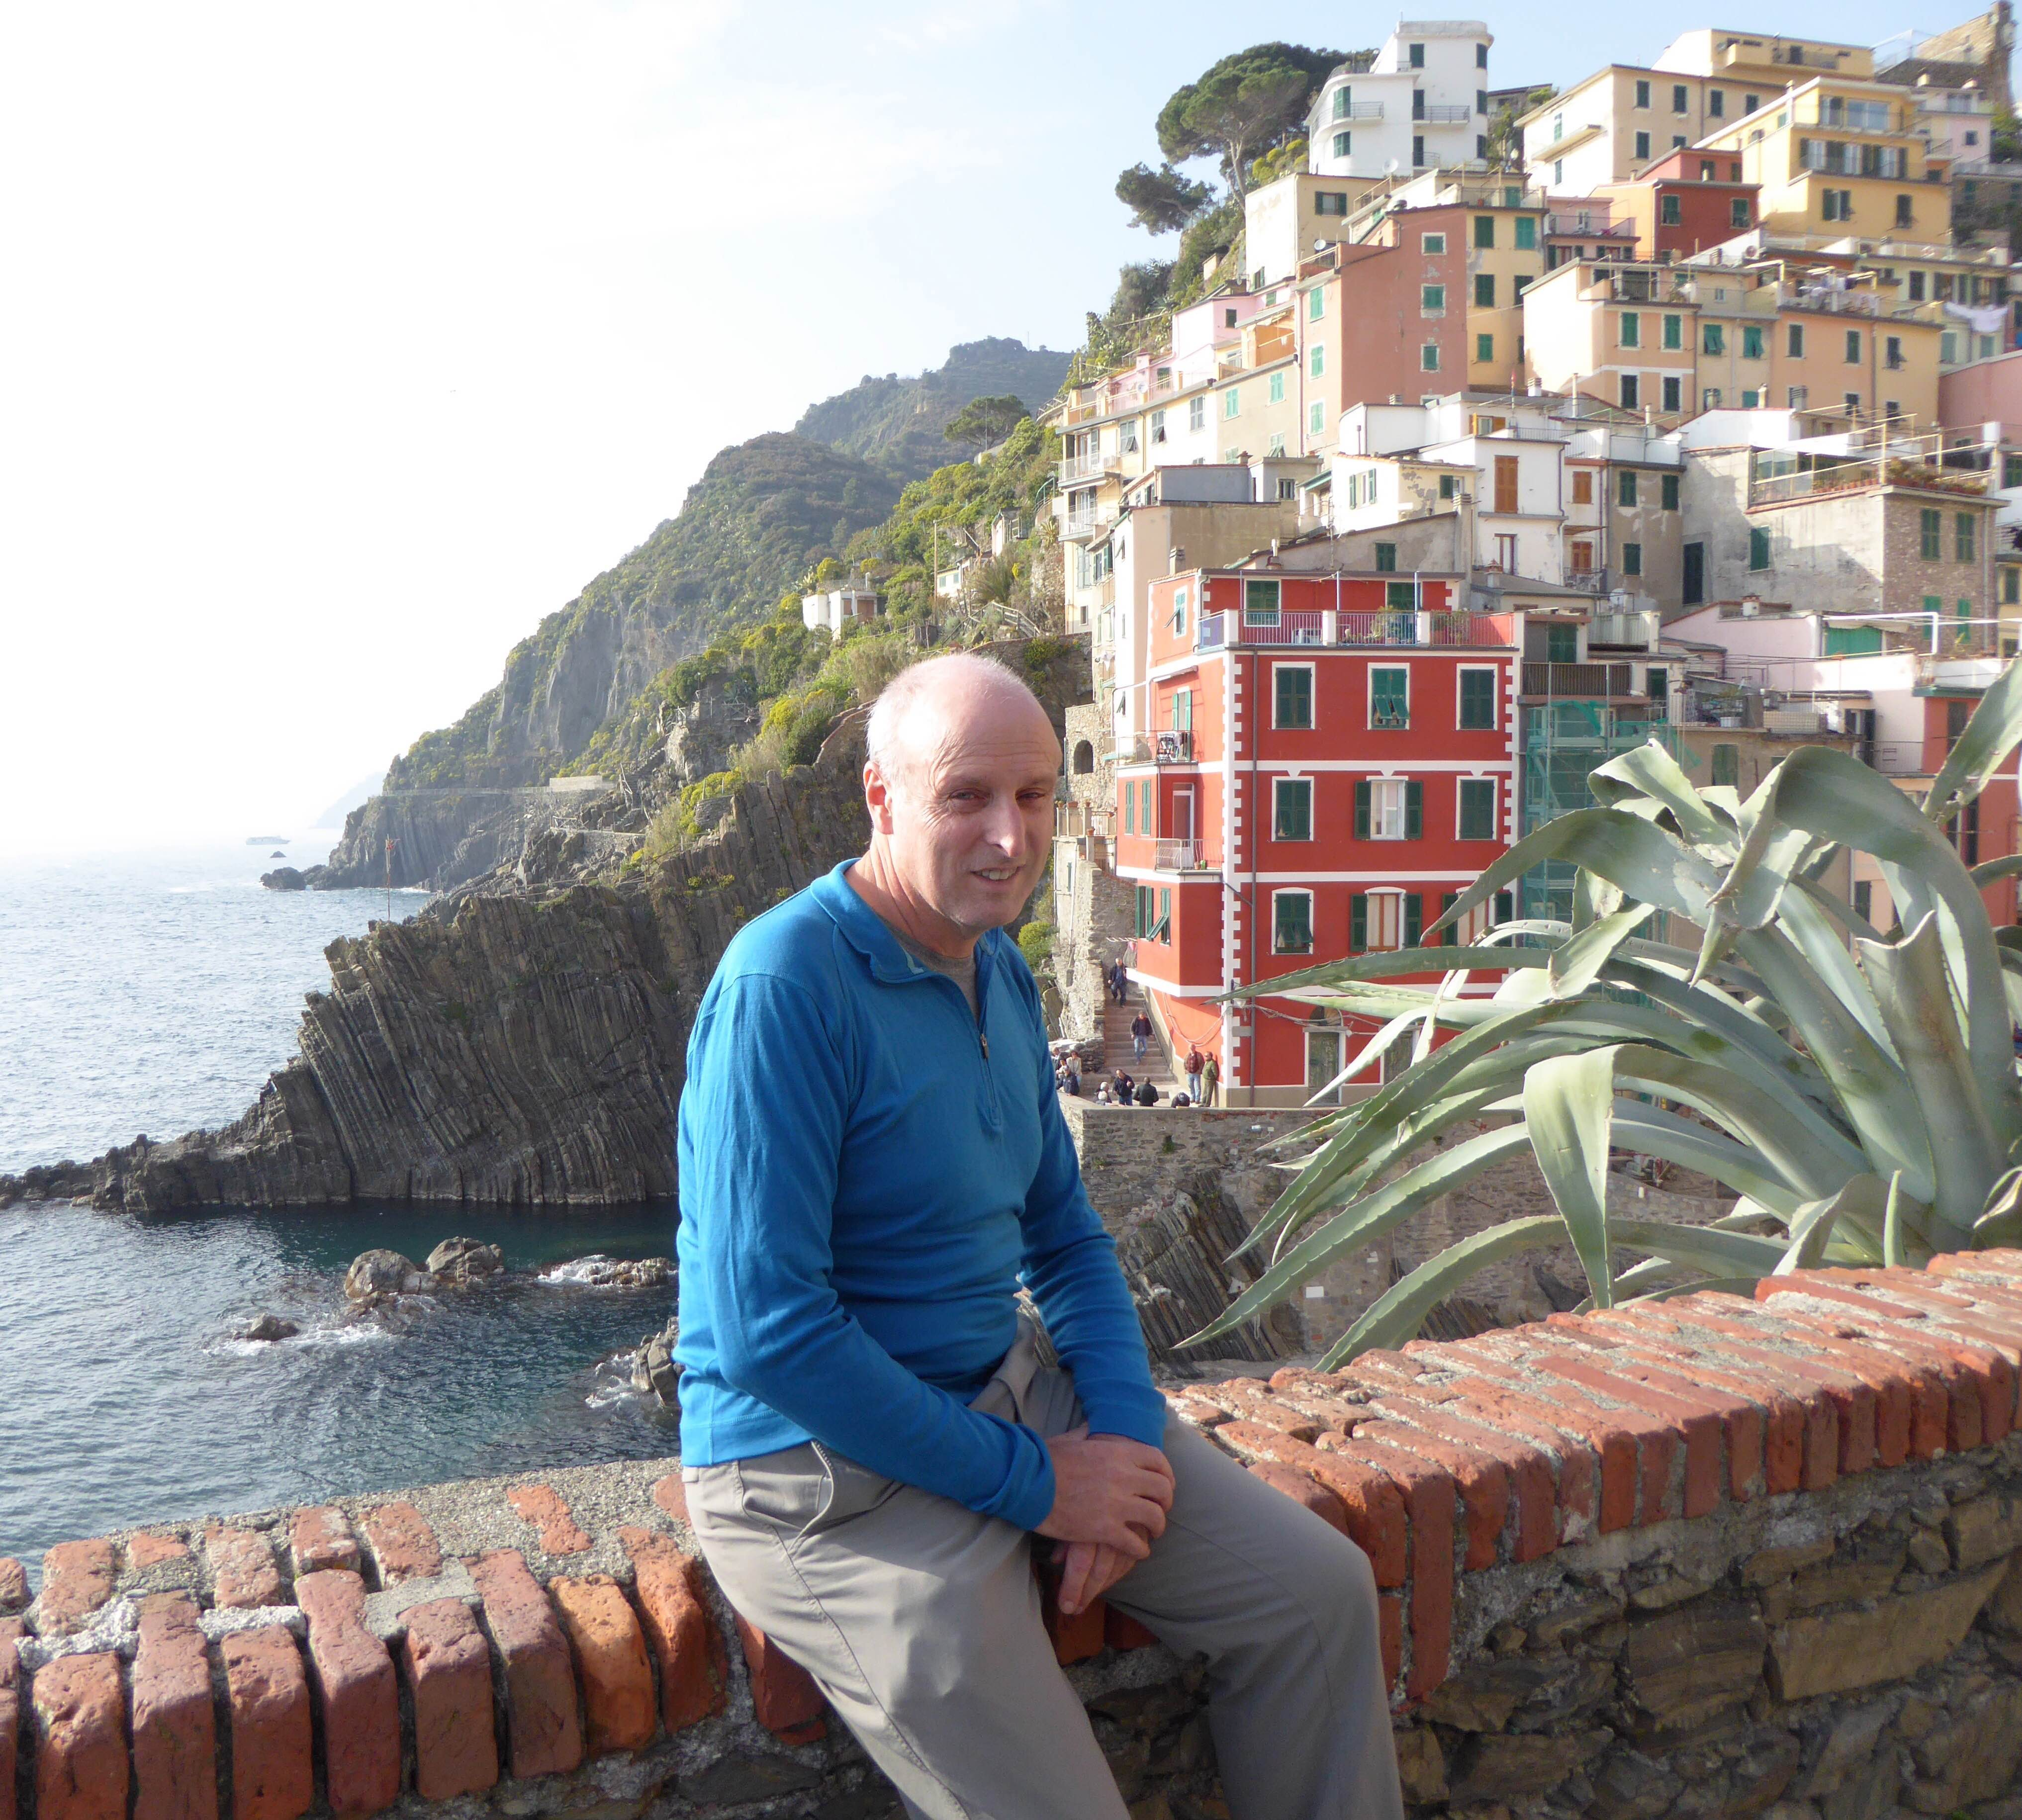 A man sitting on a wall in Cinque Terre, Italy.